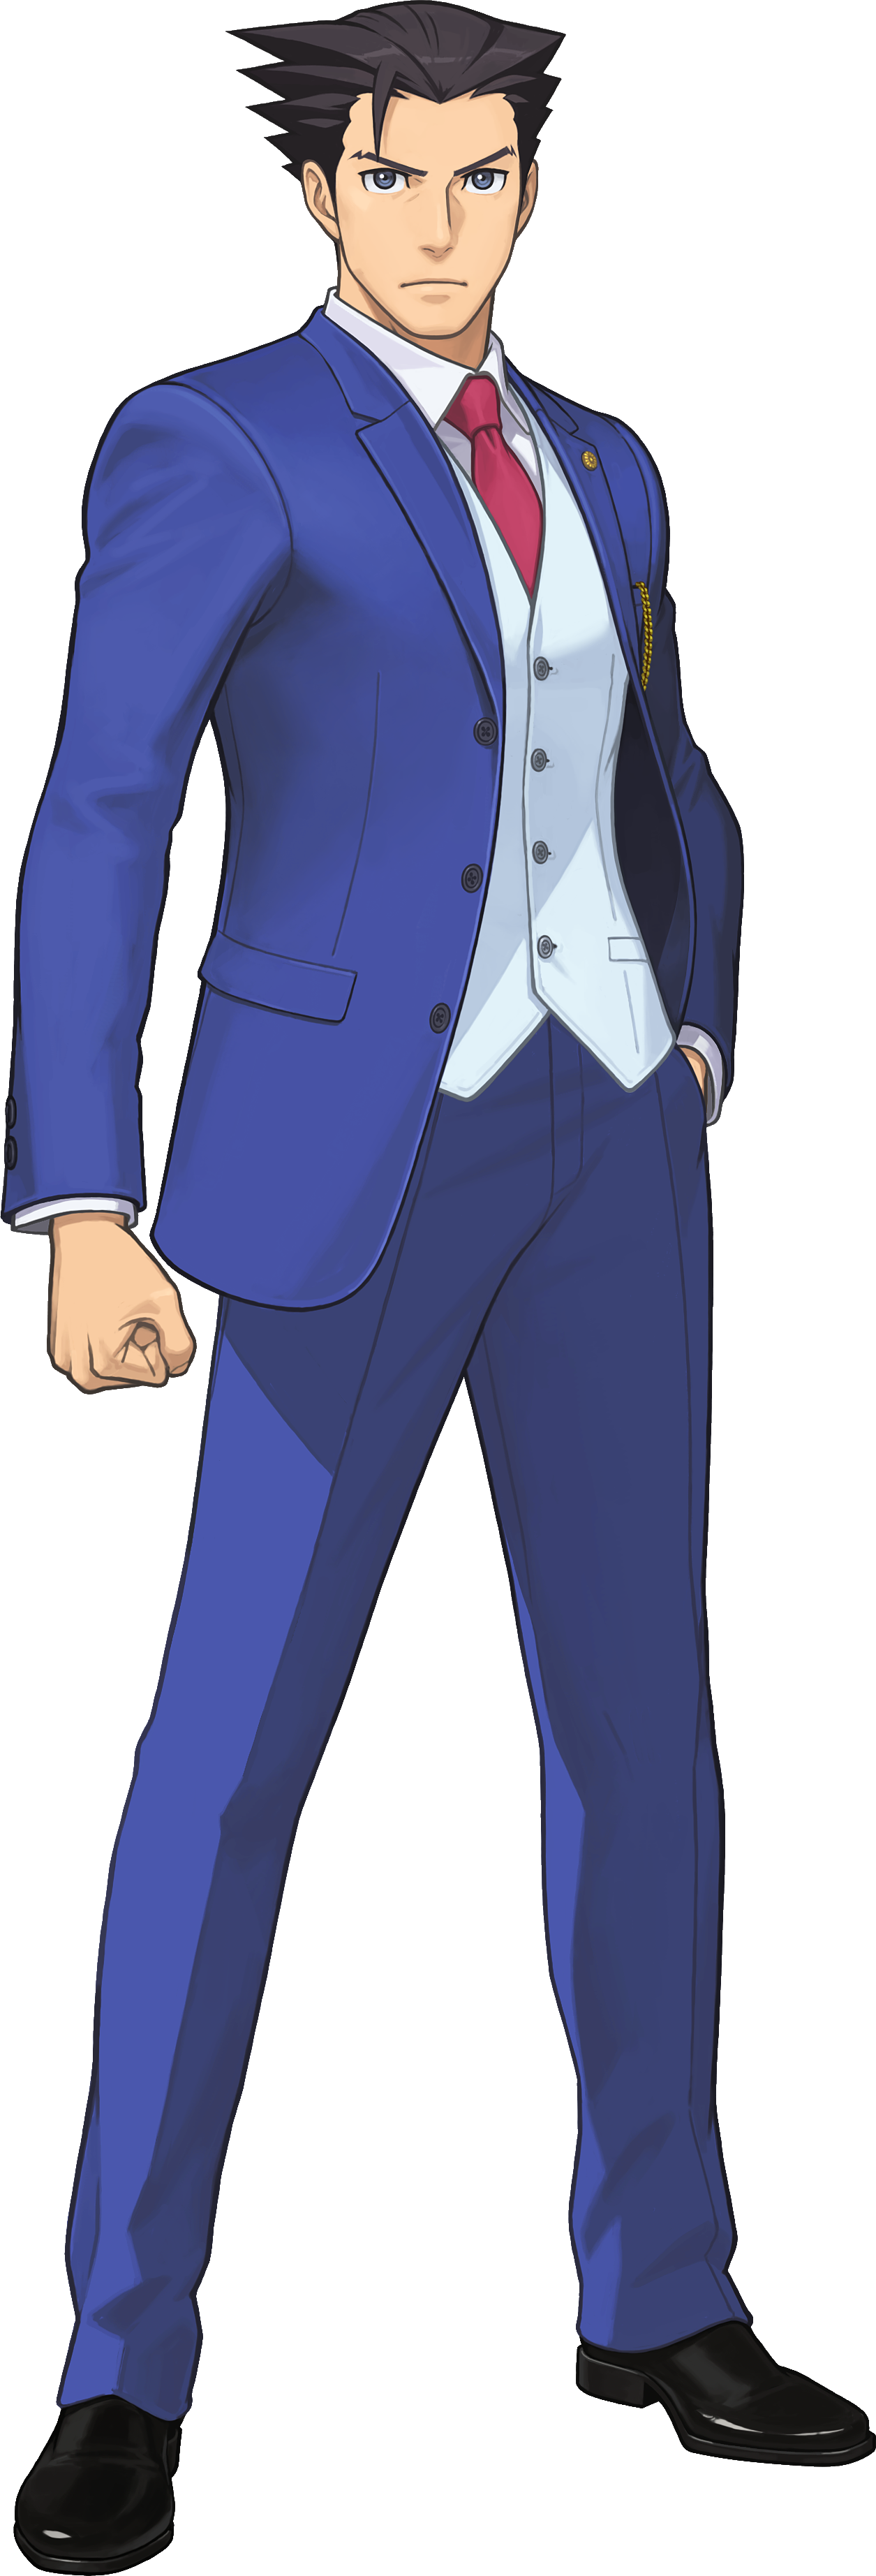 Phoenix Wright Attorneypedia Fandom Powered By Wikia